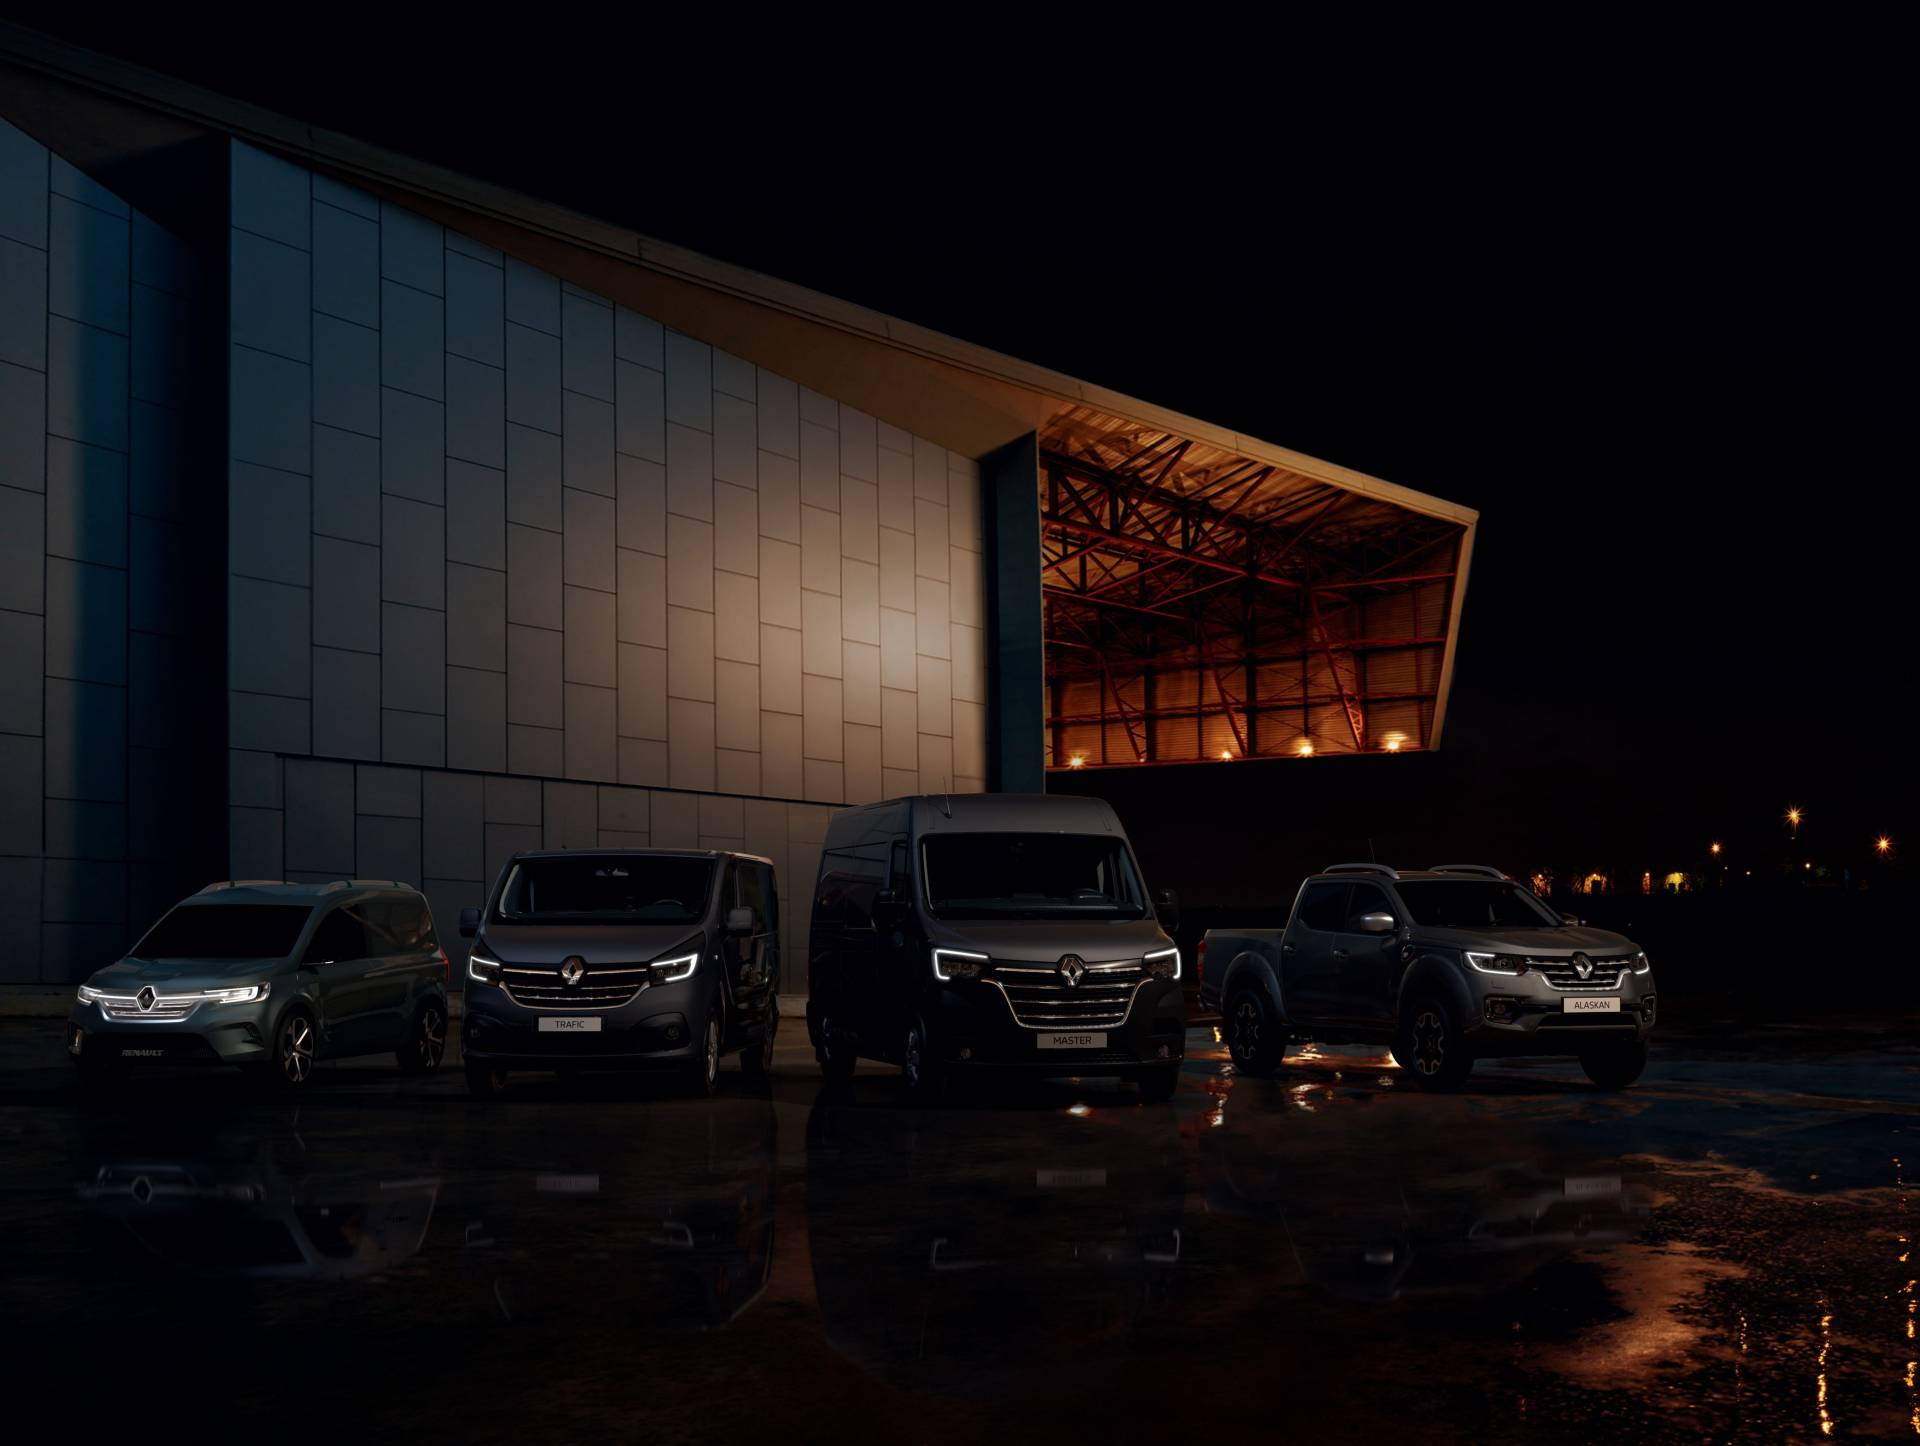 dae8303a-renault-commercial-vehicles-range-5